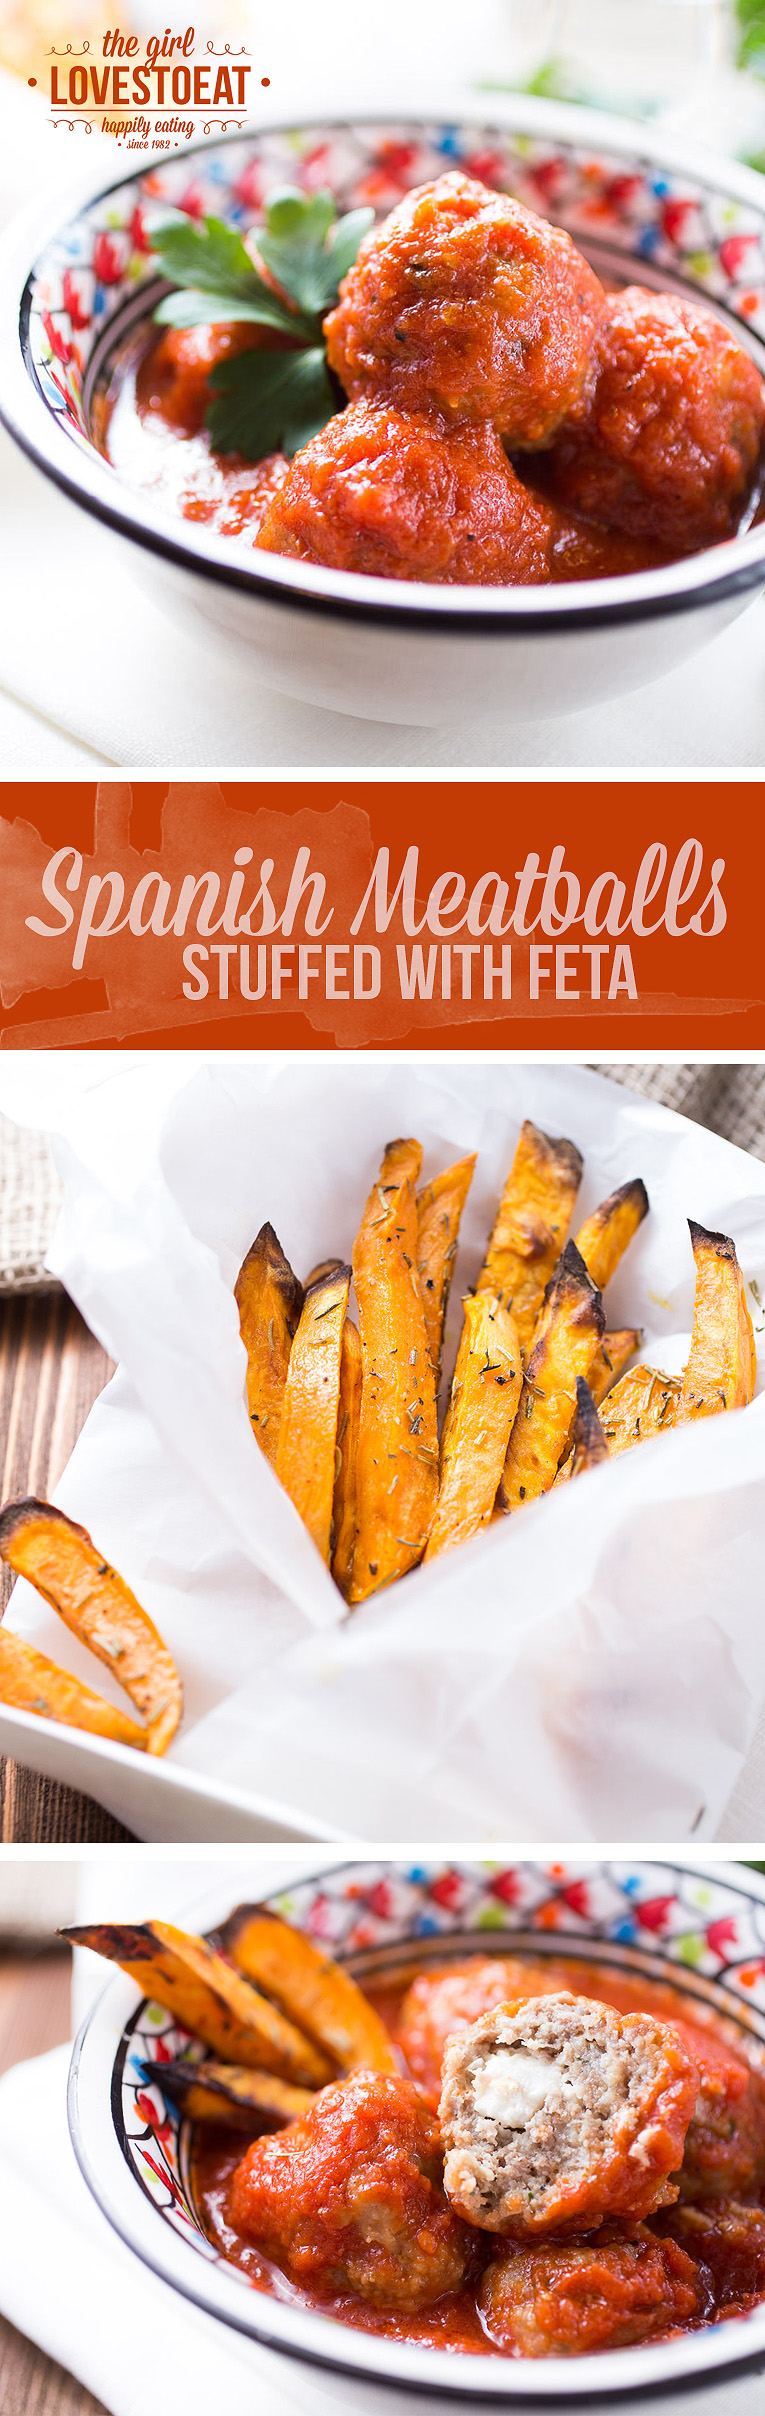 Spanish meatballs in tomato sauce stuffed with feta